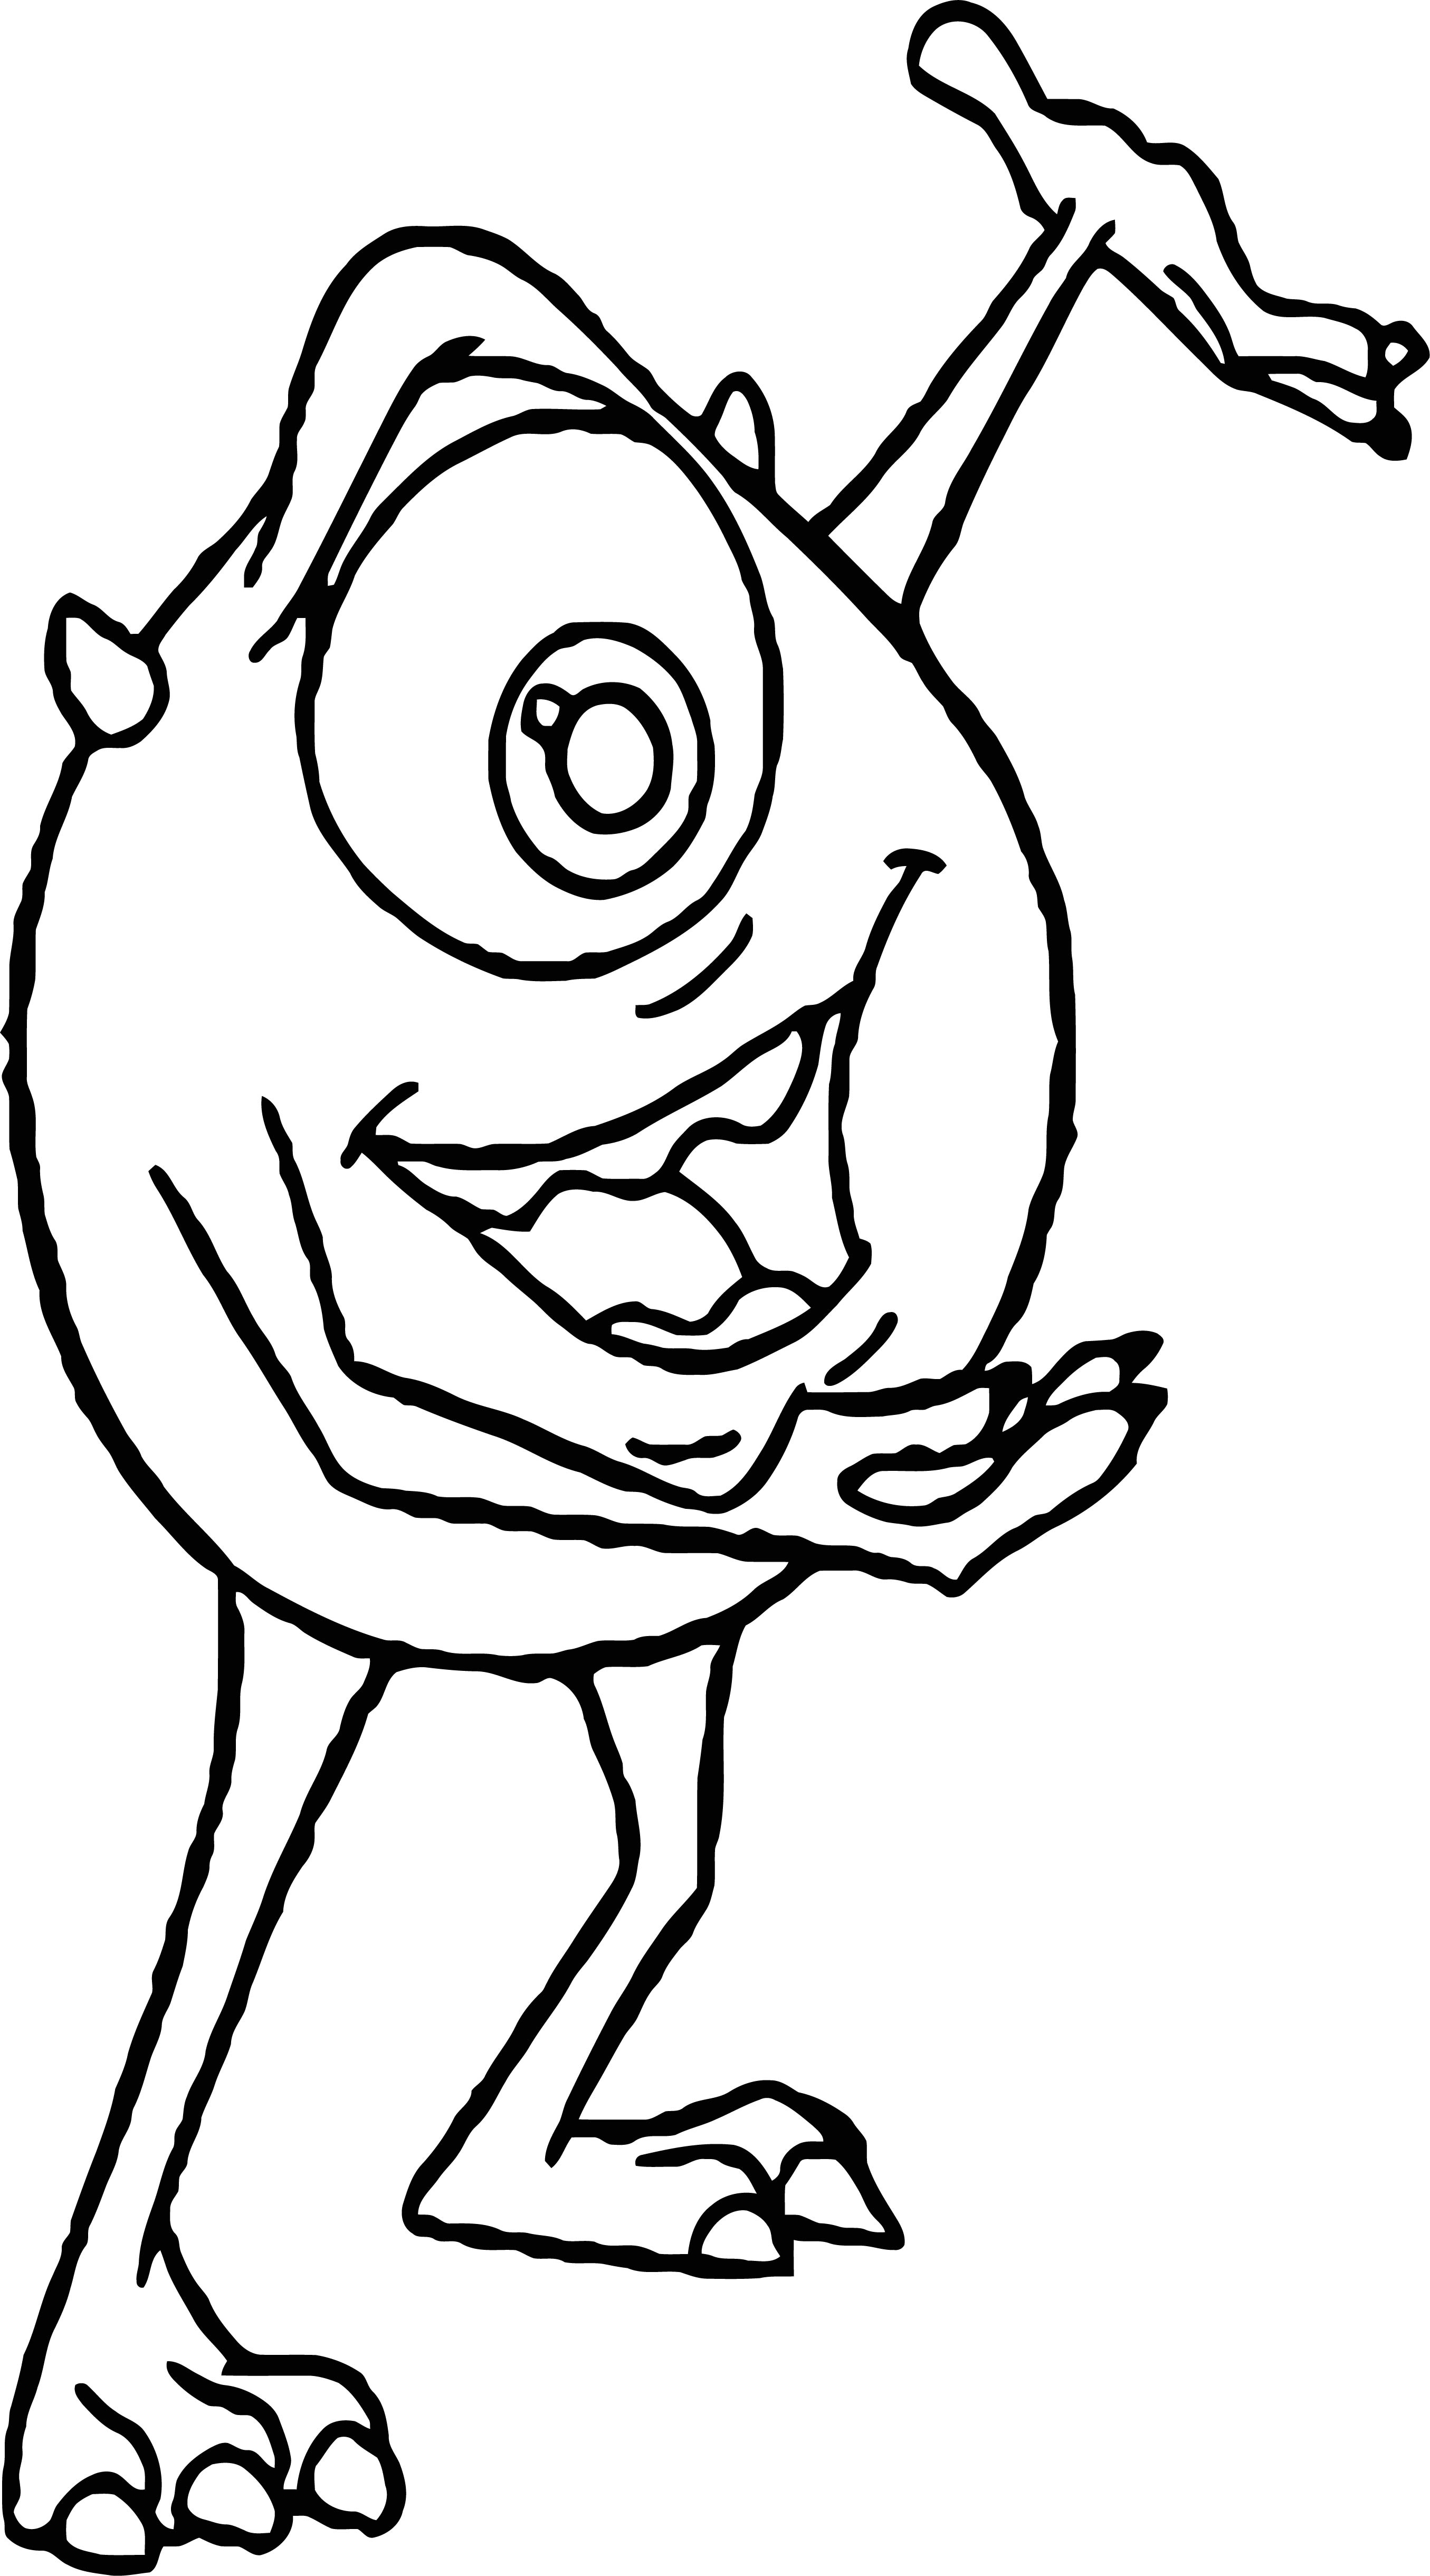 Disney Monsters Coloring Pages 11